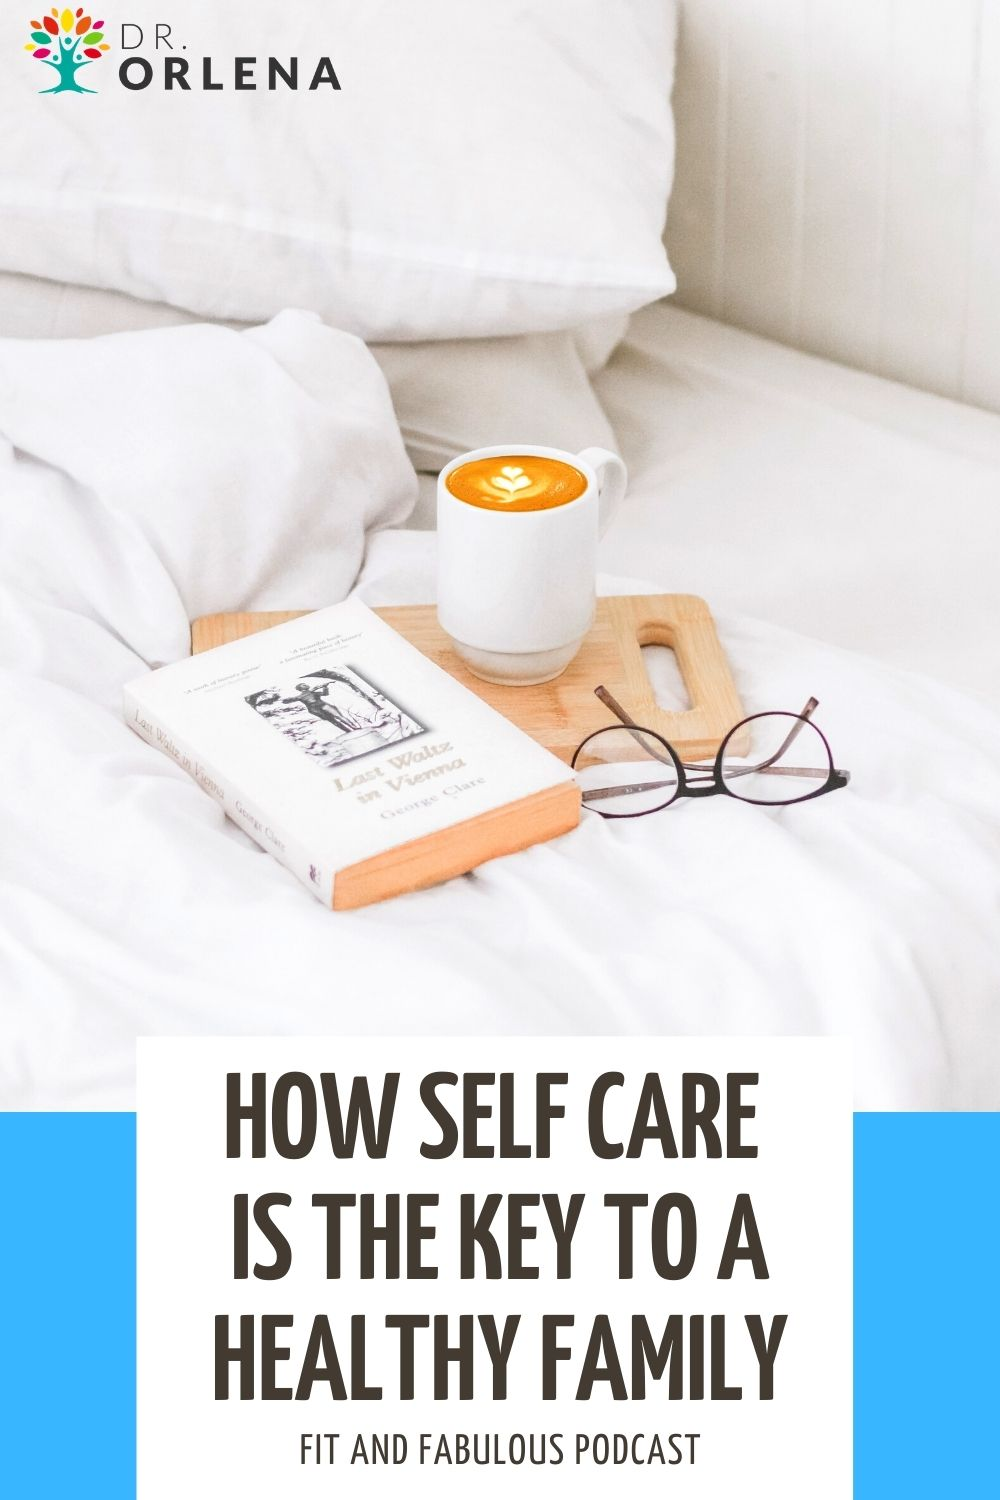 A photo of a mug of coffee, book and glasses on a bed #selfcare #selflove #momhealth #wellness #healthyliving #healthylife #healthymom #healthyfamily